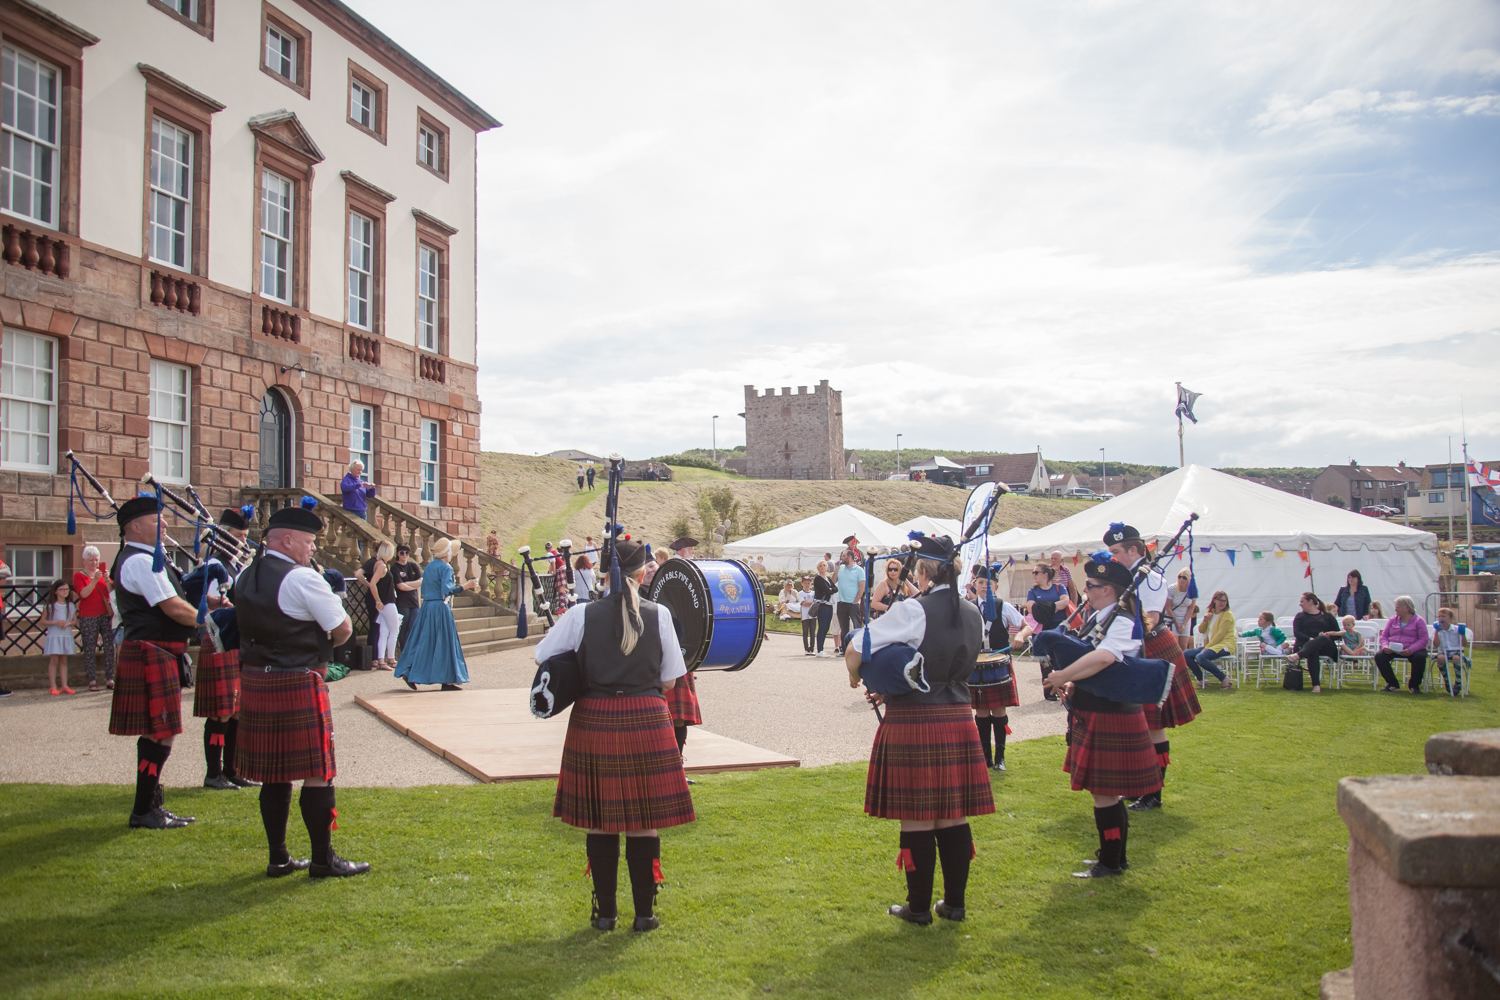 PICTORIAL_BERWICK_eyemouth-gunsgreen-extravaganza-photography-entertainment-party-event-photographer-harbour-gary-dunn-dancers-stilts-performances-speeches-day-out-summer-4548.jpg